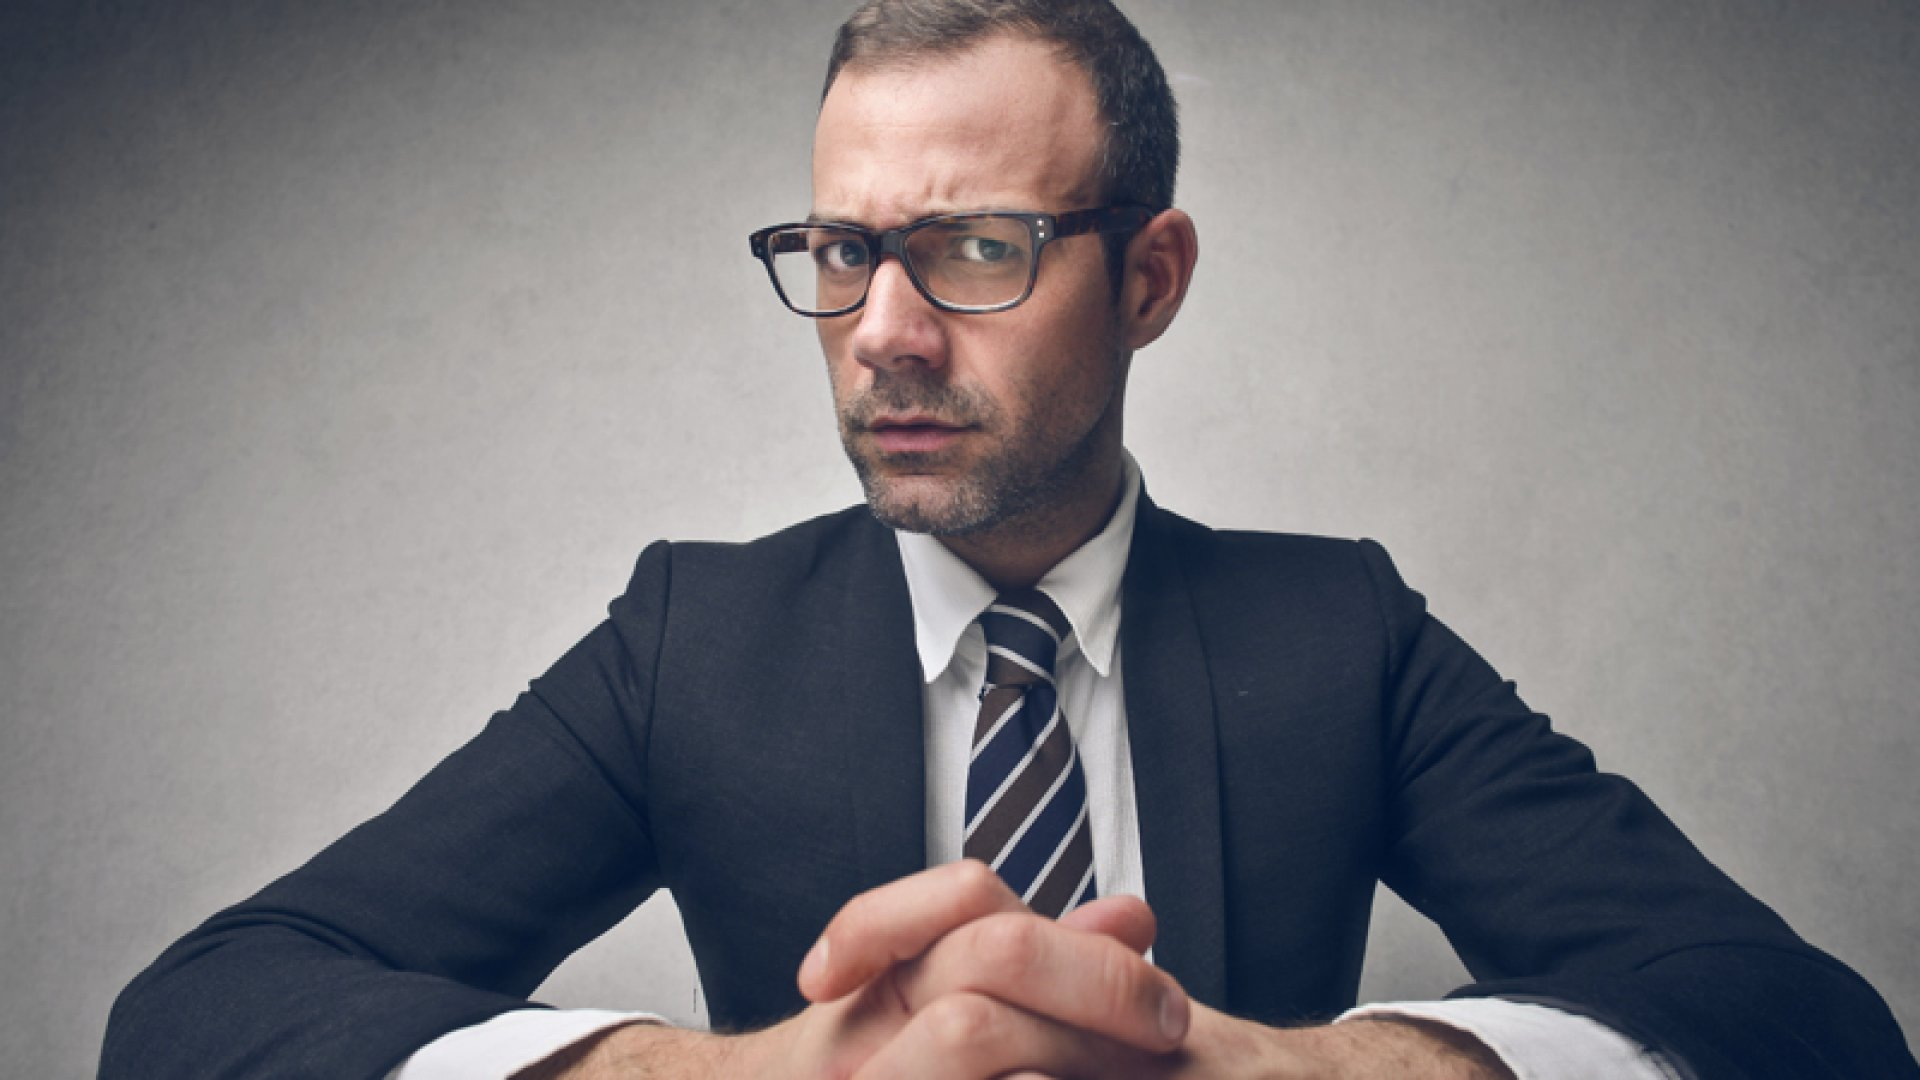 Behavior-Based Interview Questions Can Help You Make Better Hires